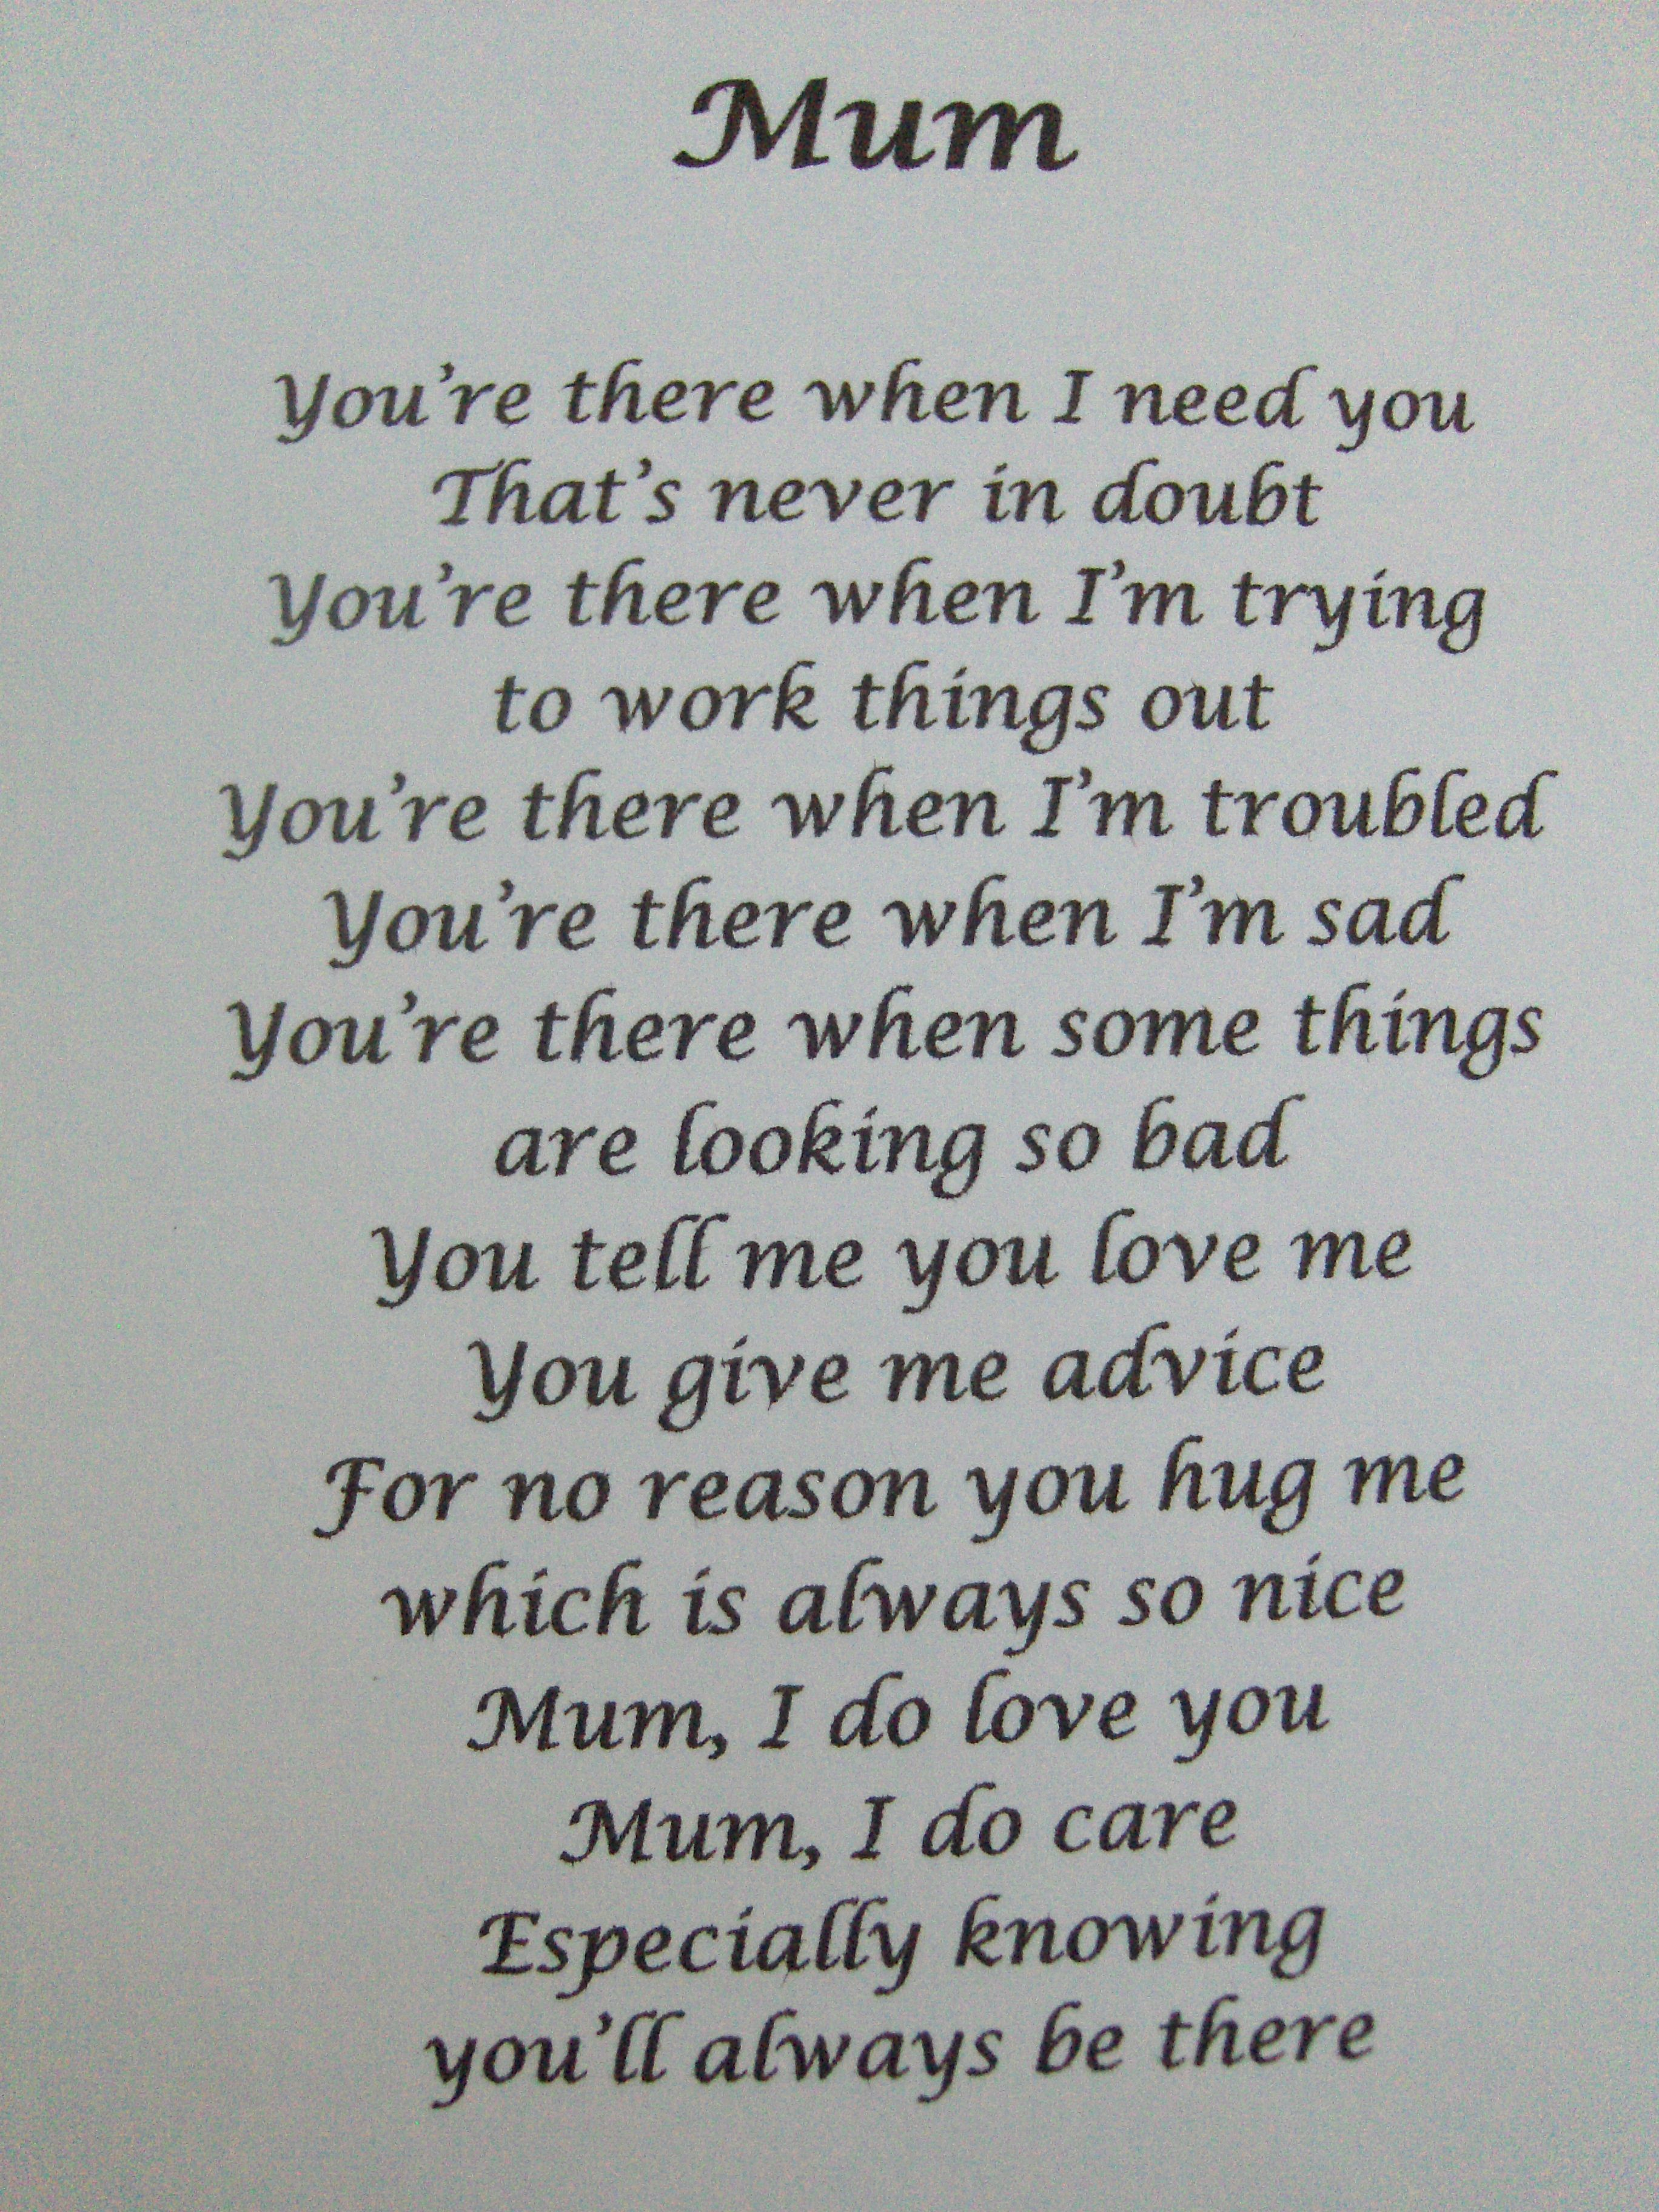 Mother And Daughter Quotes And Poems Google Search Happy Birthday Mom Poems Mom Birthday Quotes Happy Birthday Mom Quotes